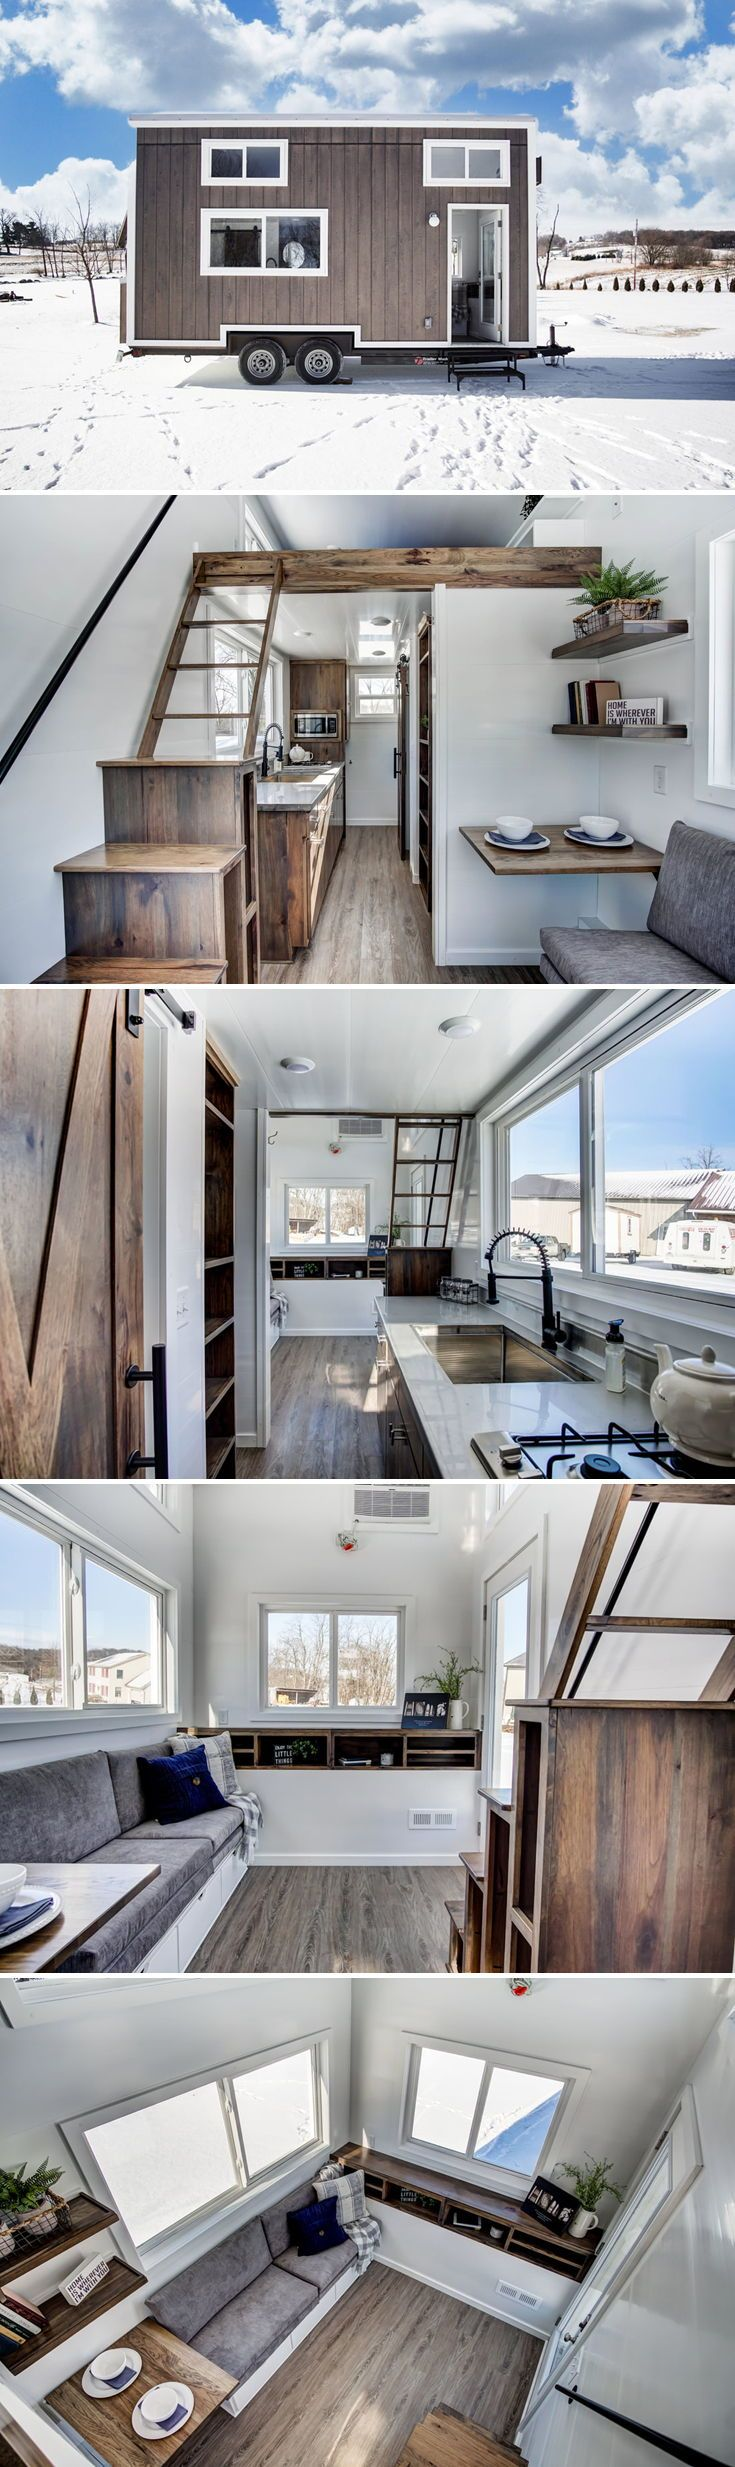 Built by Modern Tiny Living as a vacation rental for Try It Tiny, the Cocoa is another 20-foot tiny home based on the popular Mohican model. The Cocoa features gorgeous wood finishes, stainless steel countertops, modern black hardware, and tons of storage.